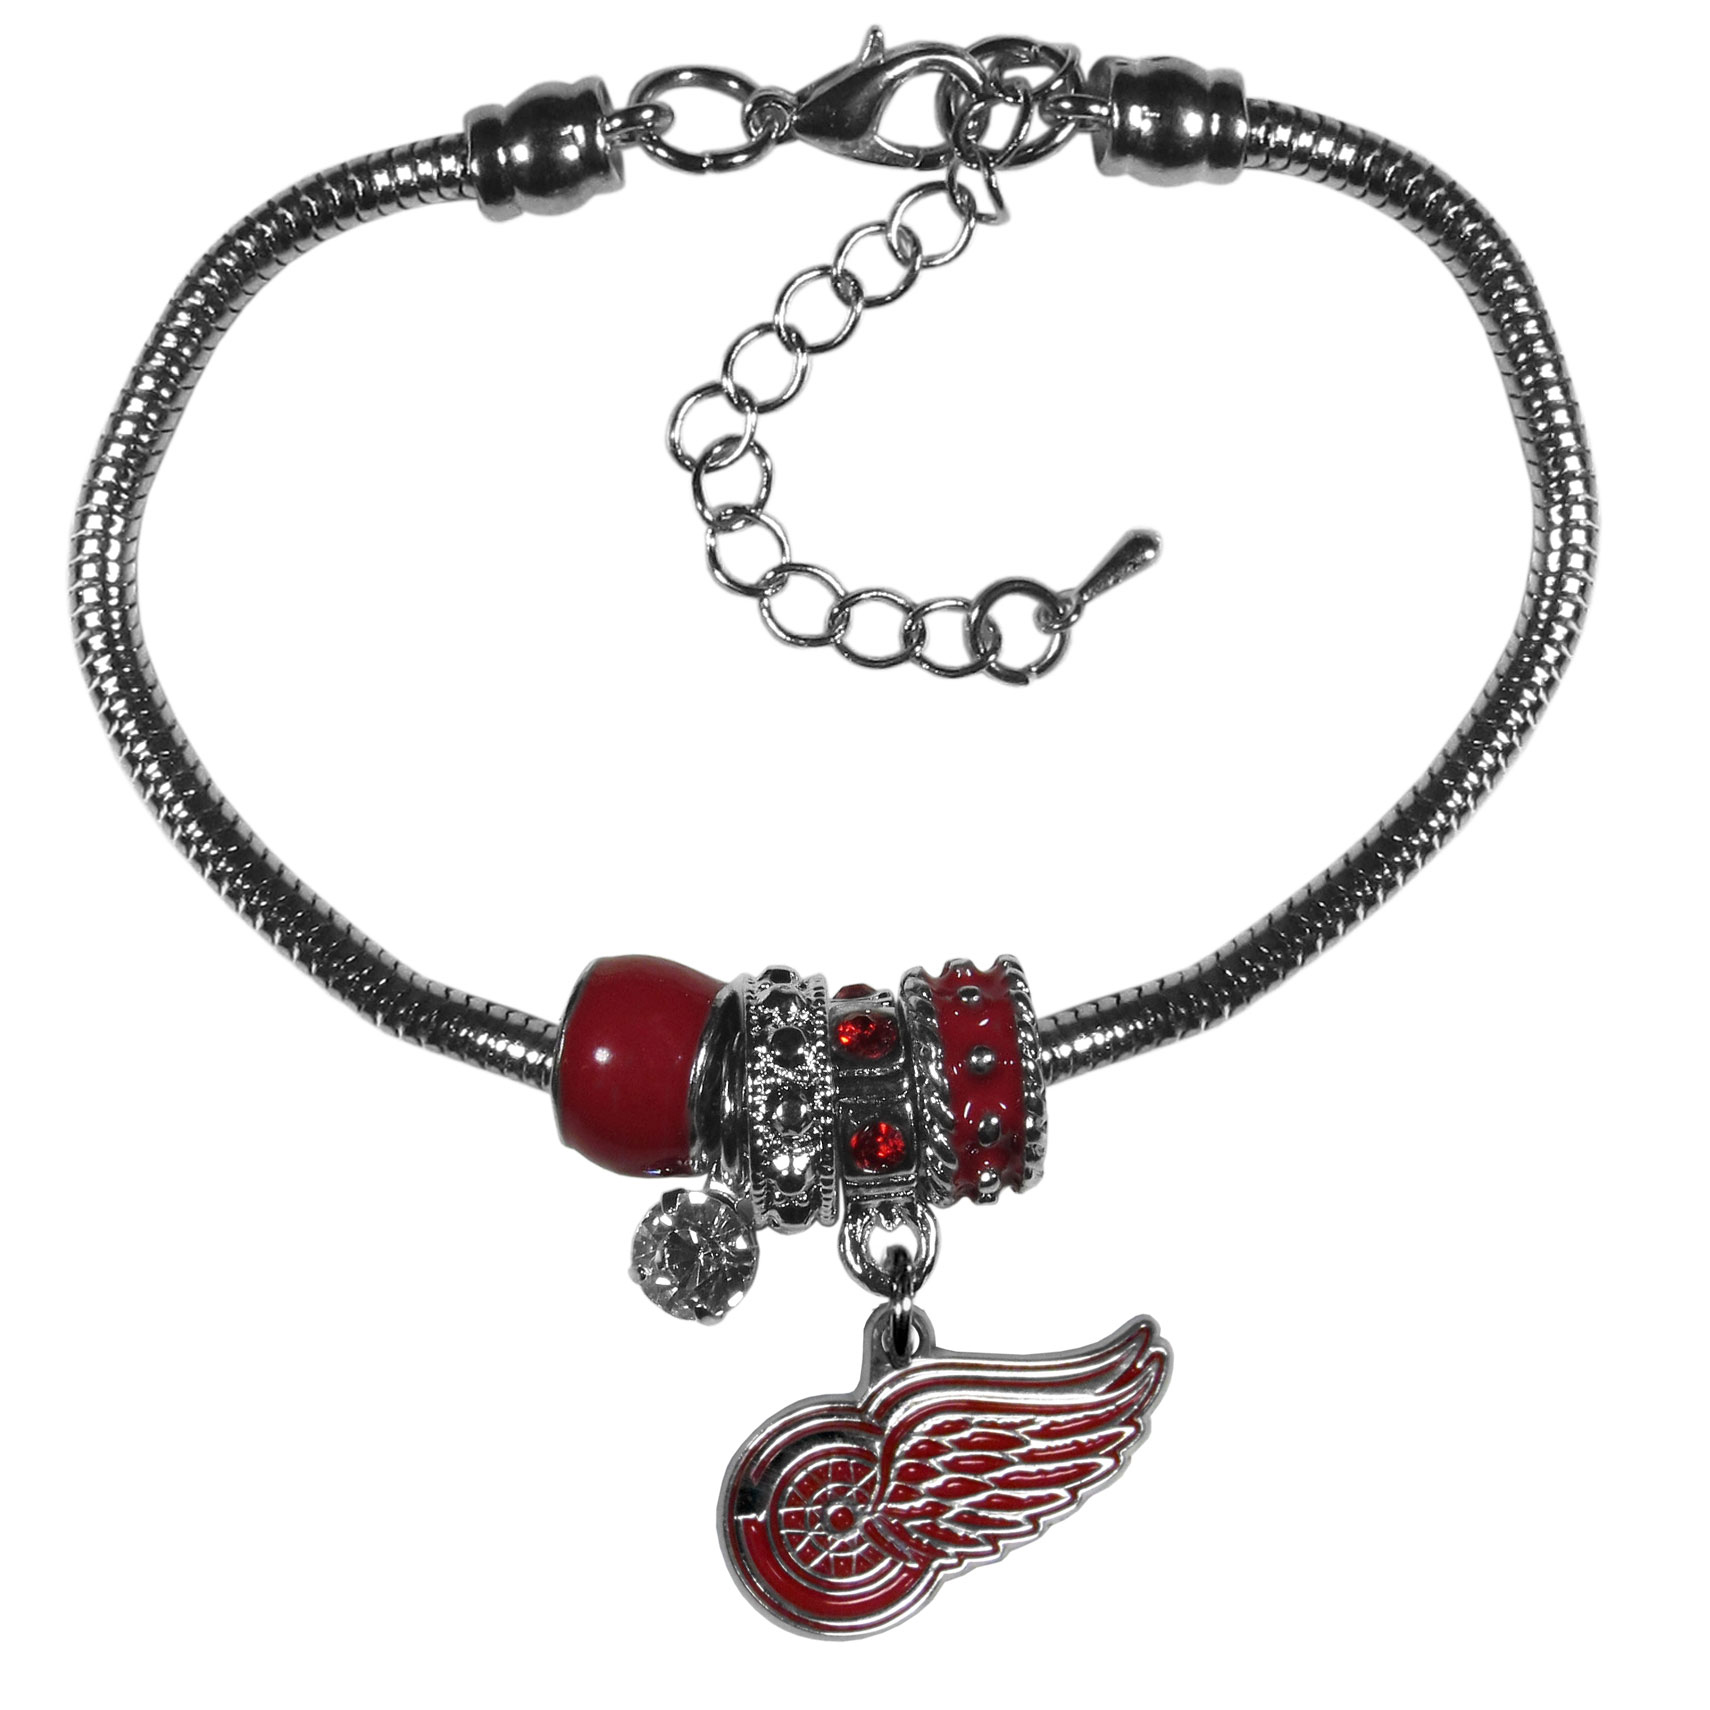 Detroit Red Wings® Euro Bead Bracelet - We have combined the wildly popular Euro style beads with your favorite team to create our  Detroit Red Wings® bead bracelet. The 7.5 inch snake chain with 2 inch extender features 4 Euro beads with enameled team colors and rhinestone accents with a high polish, nickel free charm and rhinestone charm. Perfect way to show off your team pride.